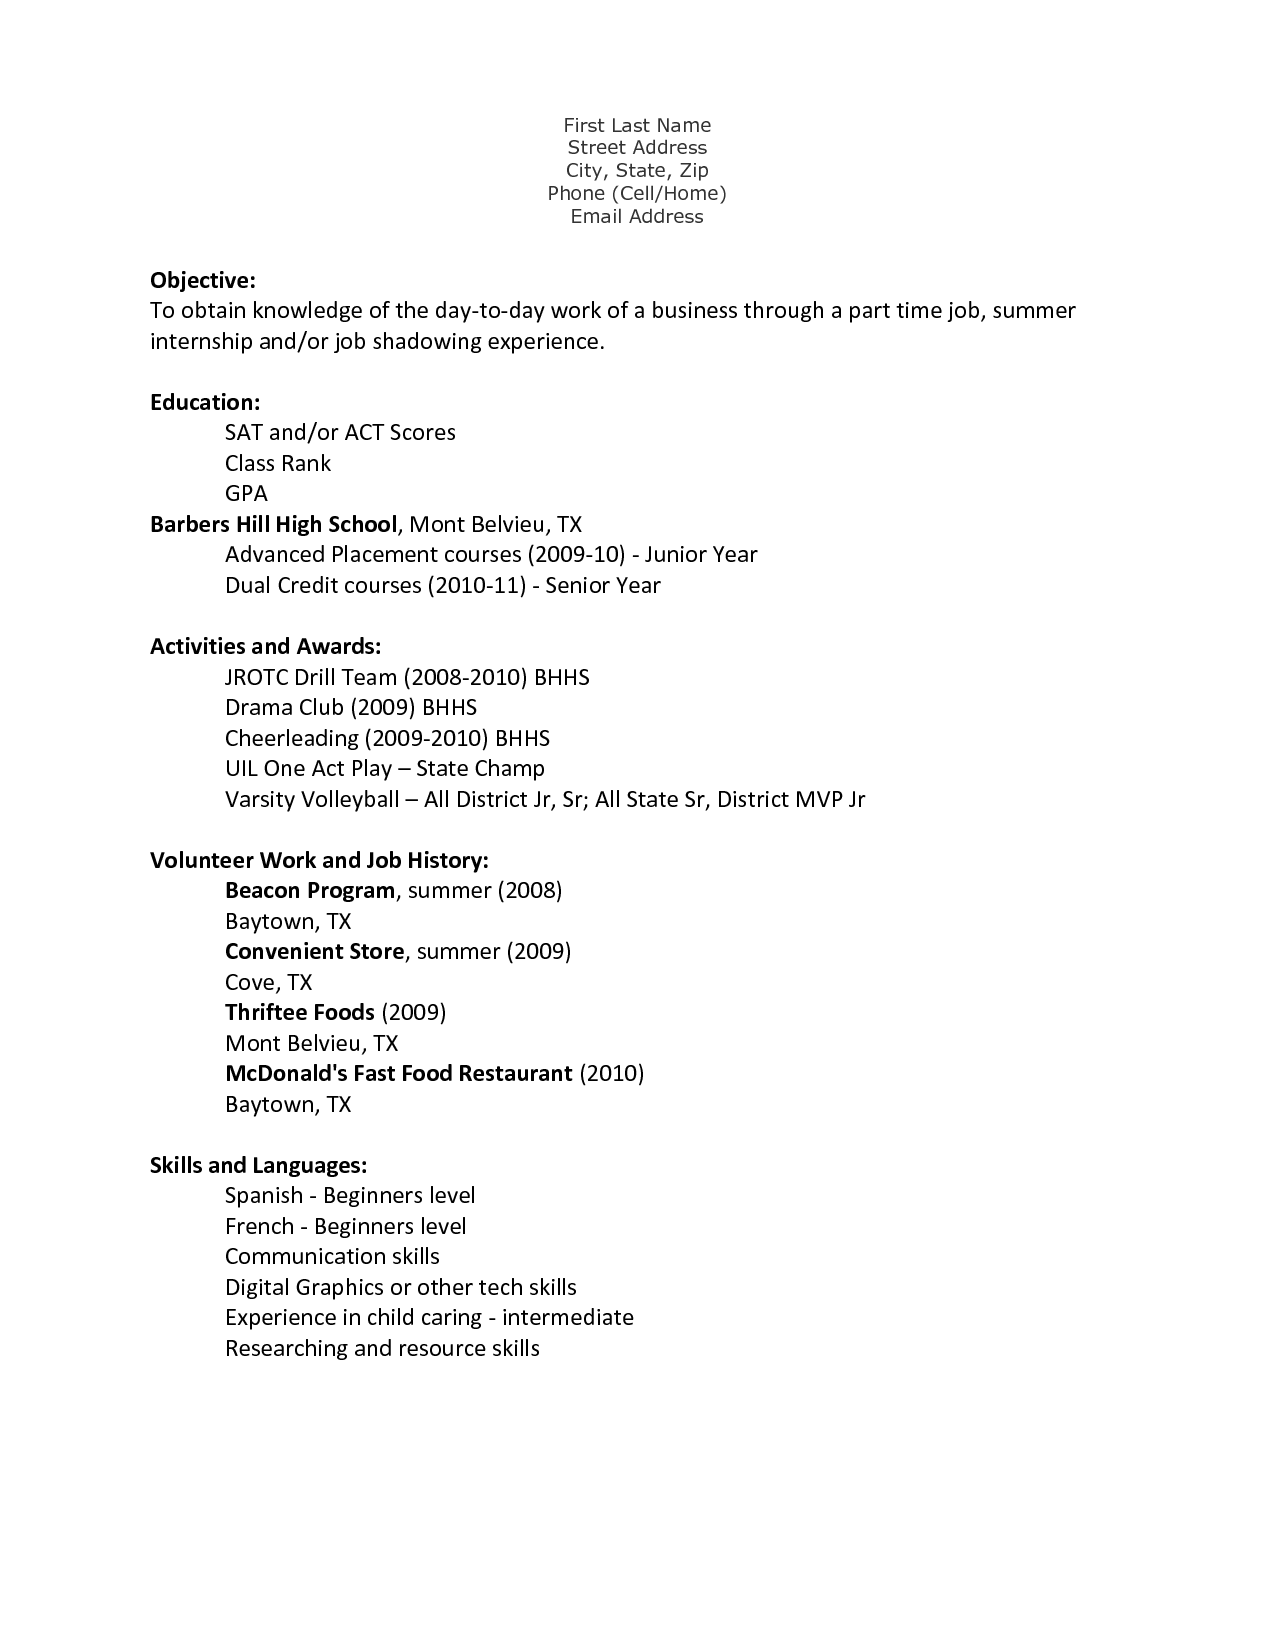 A Teenage | 4-Resume Examples | First job resume, Job resume ...